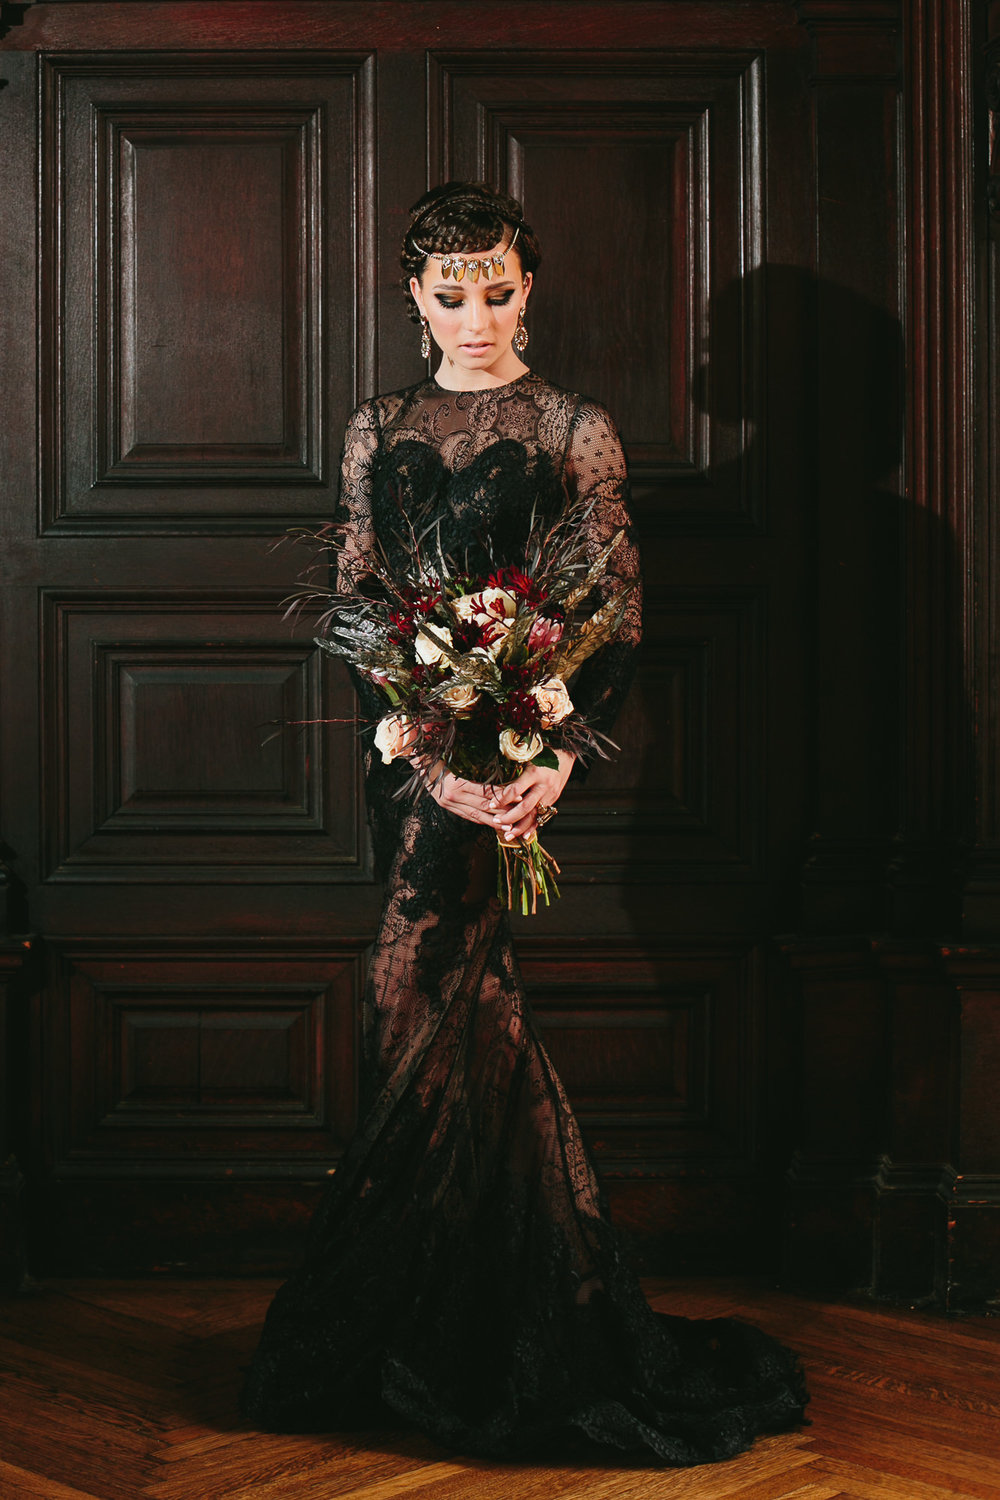 65 Black Lace Wedding Feather Bouquet Highline Hotel NYC.jpg